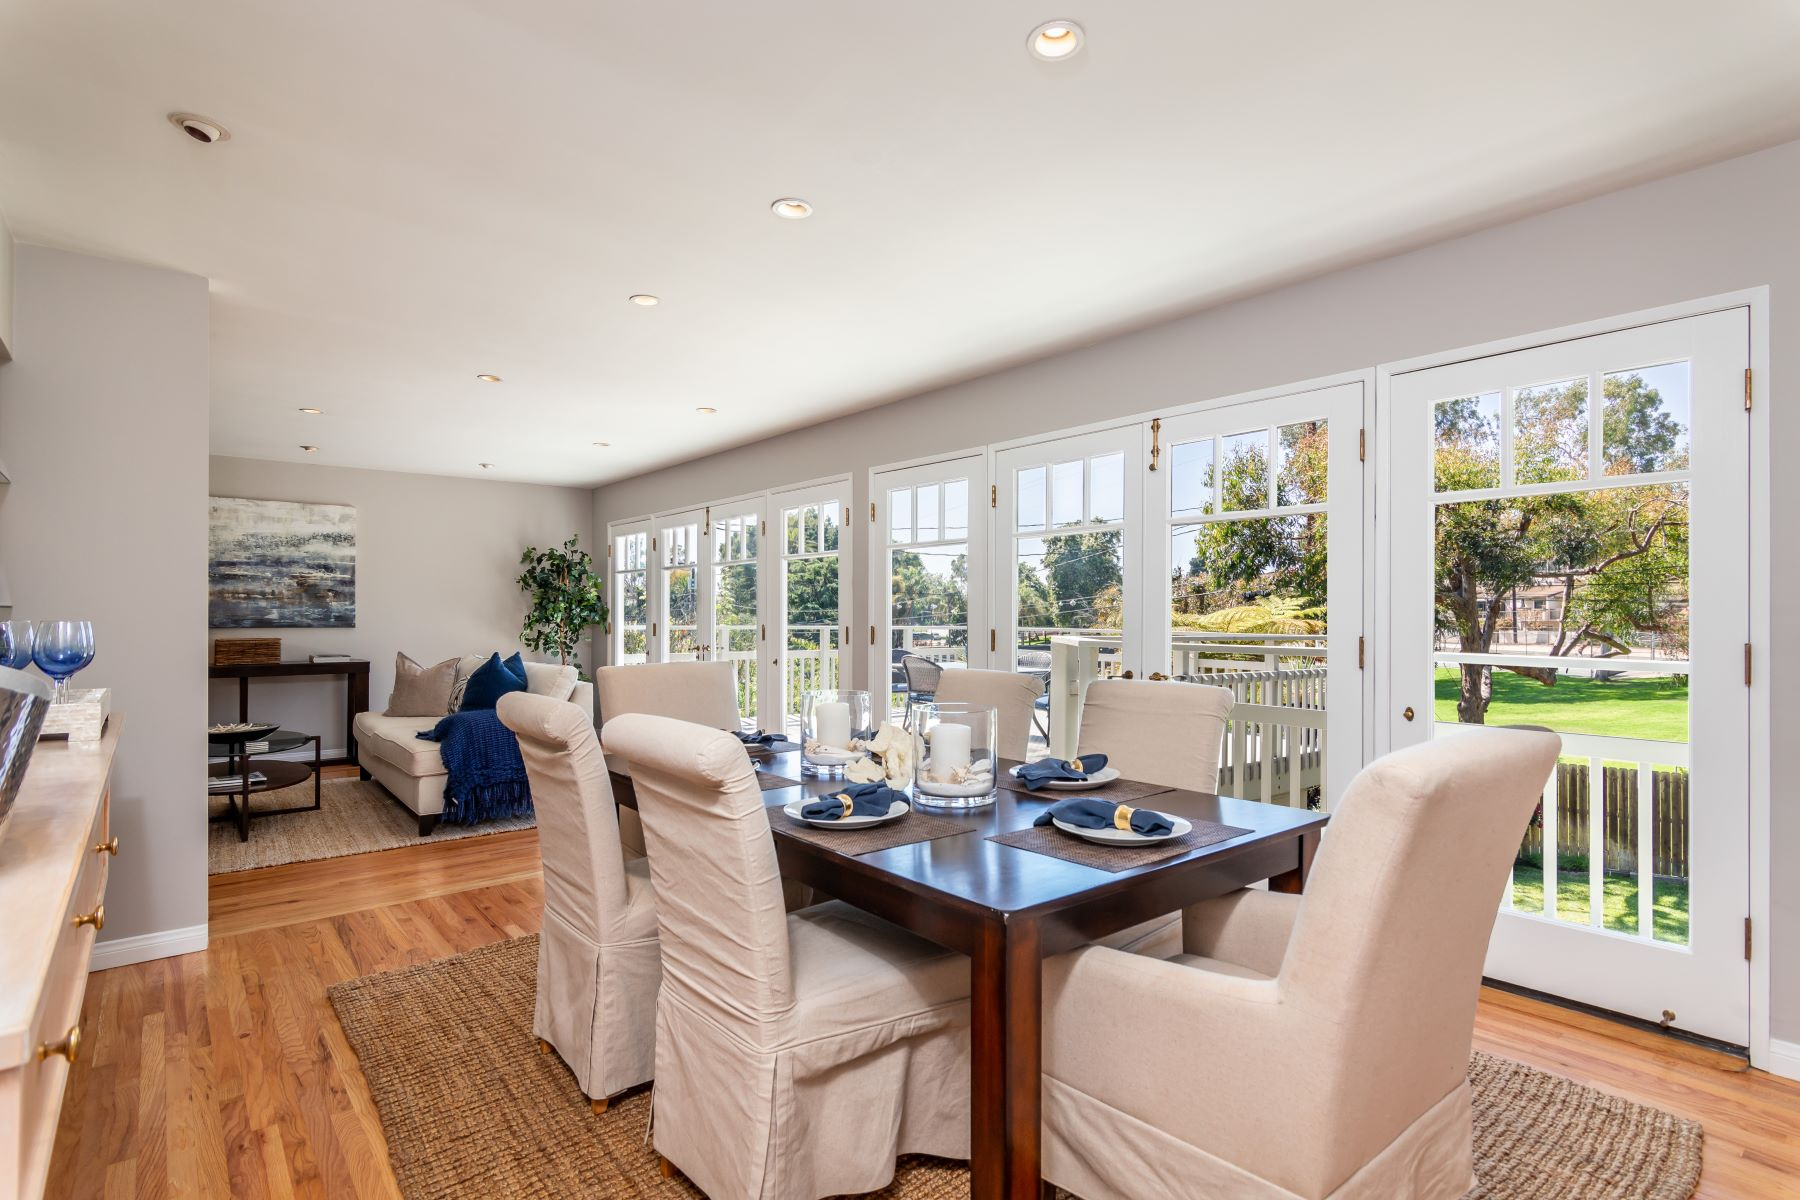 Single Family Homes for Sale at 232 Vista Del Parque, Redondo Beach, CA 90277 232 Vista Del Parque Redondo Beach, California 90277 United States